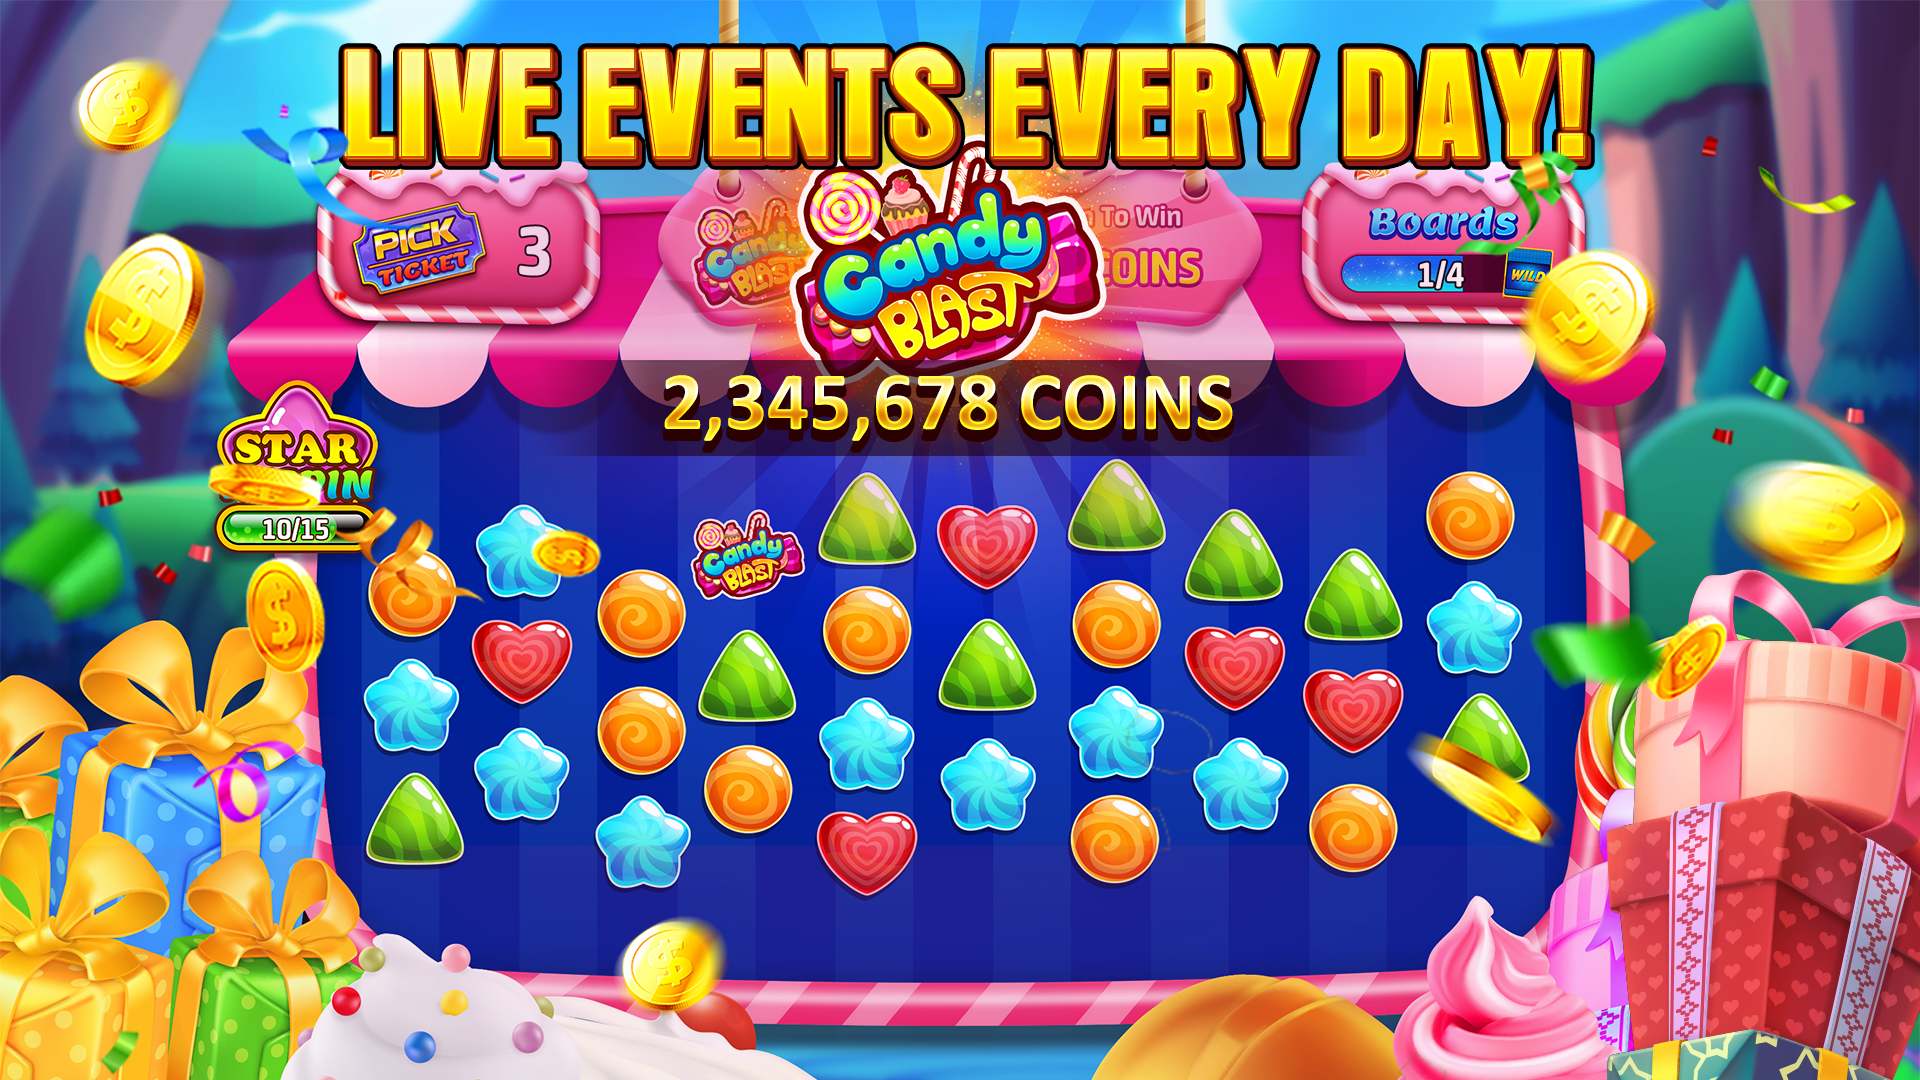 New free spins